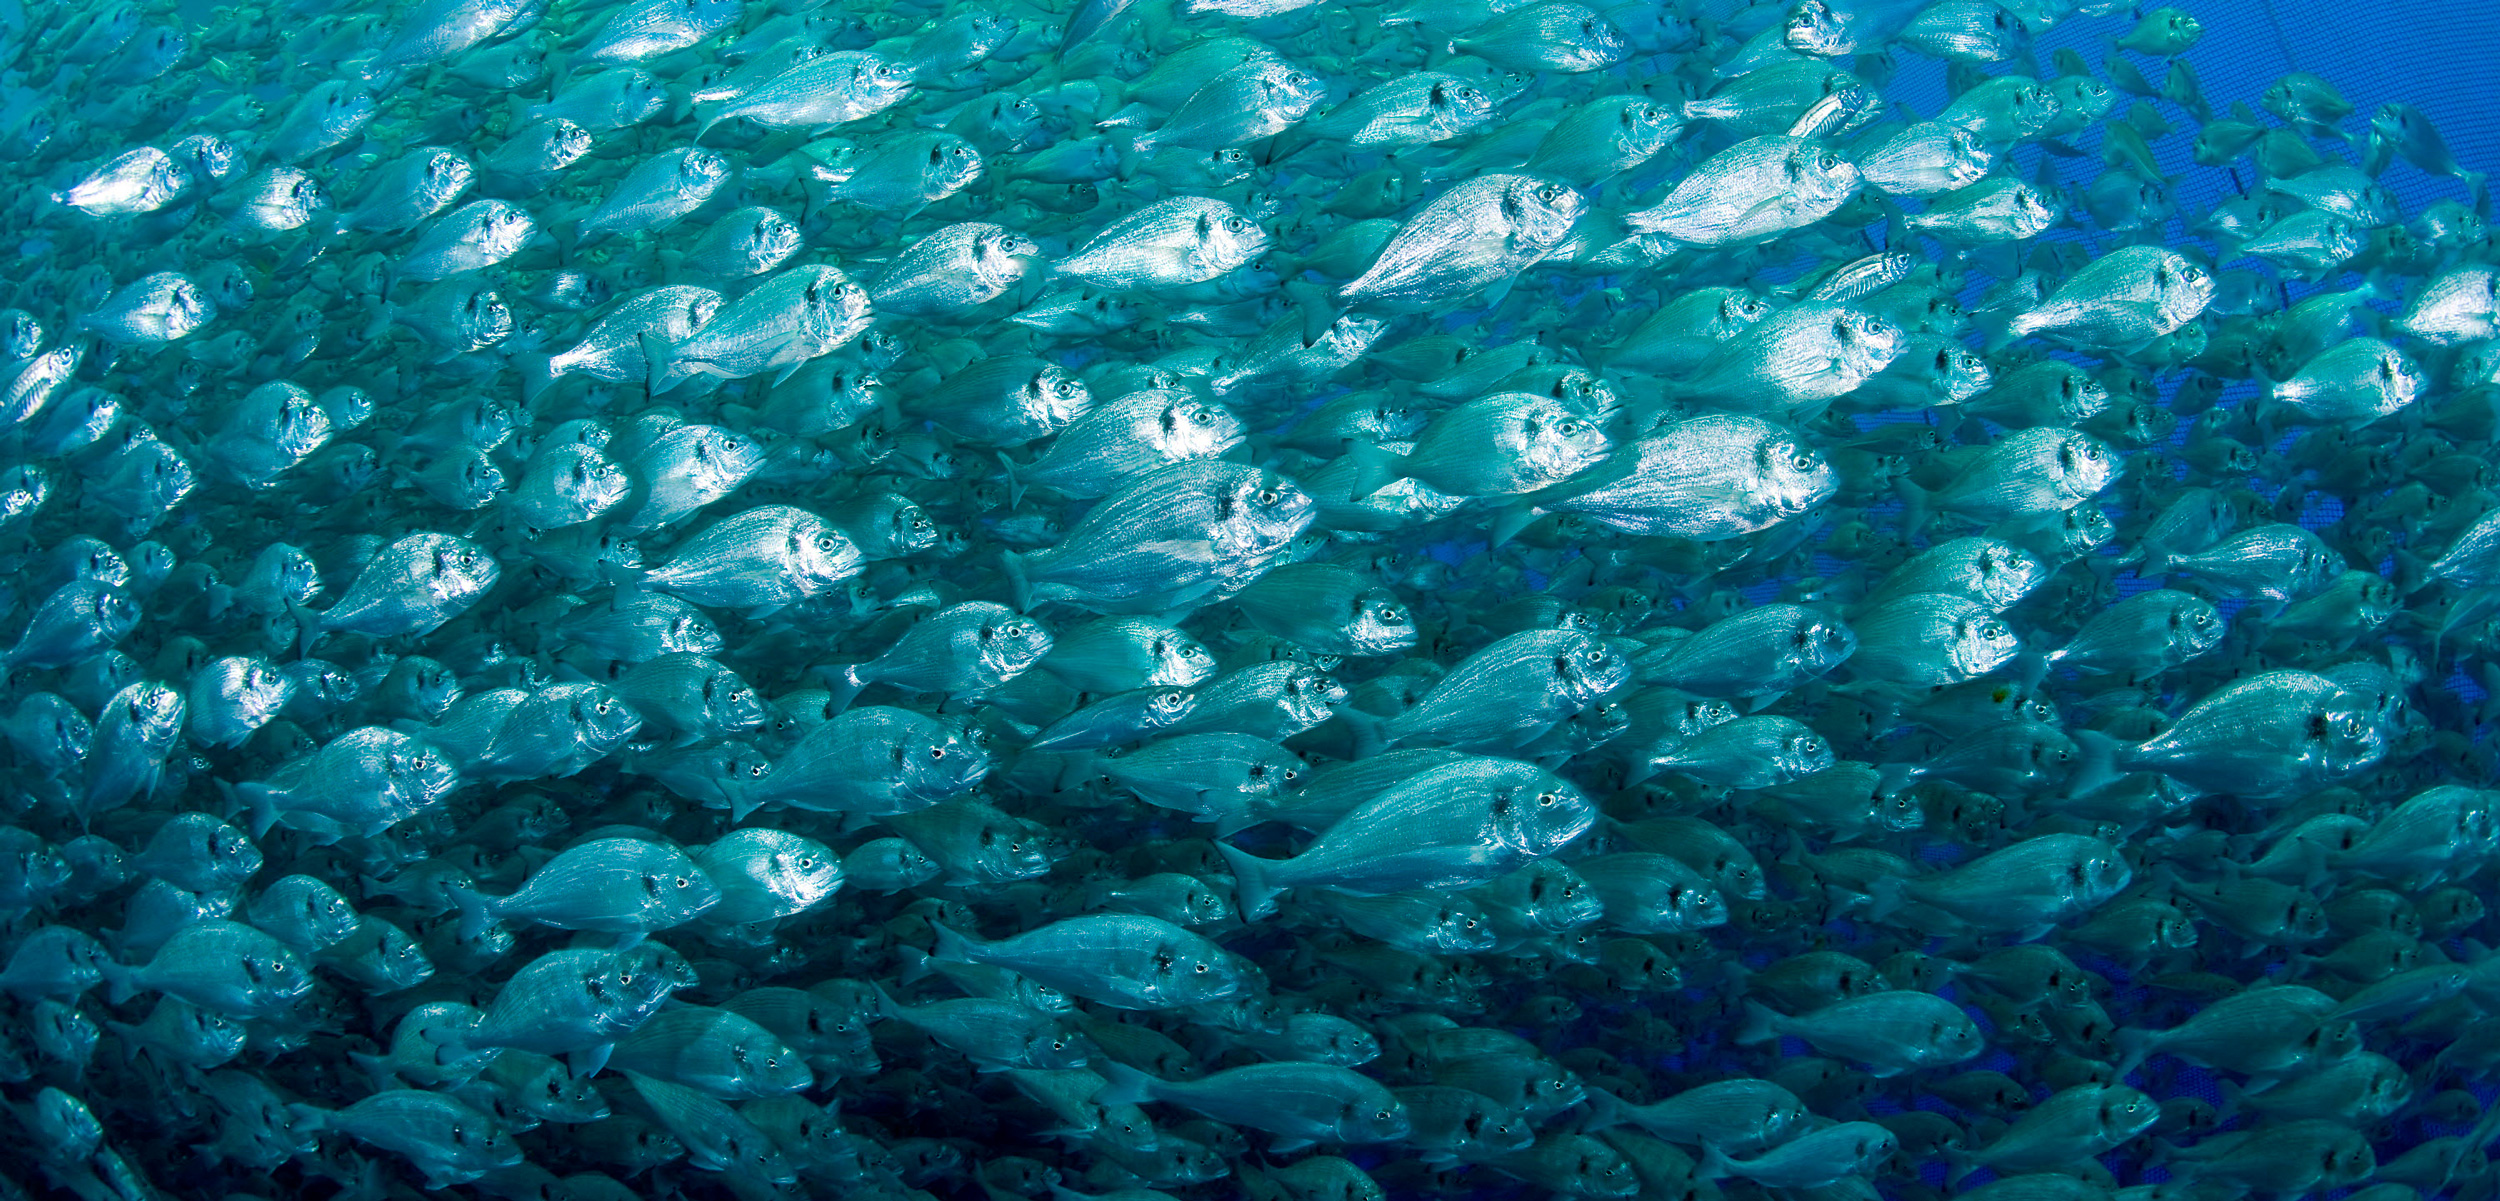 The Scent of Danger Makes These Fish Hulk Out | Hakai Magazine